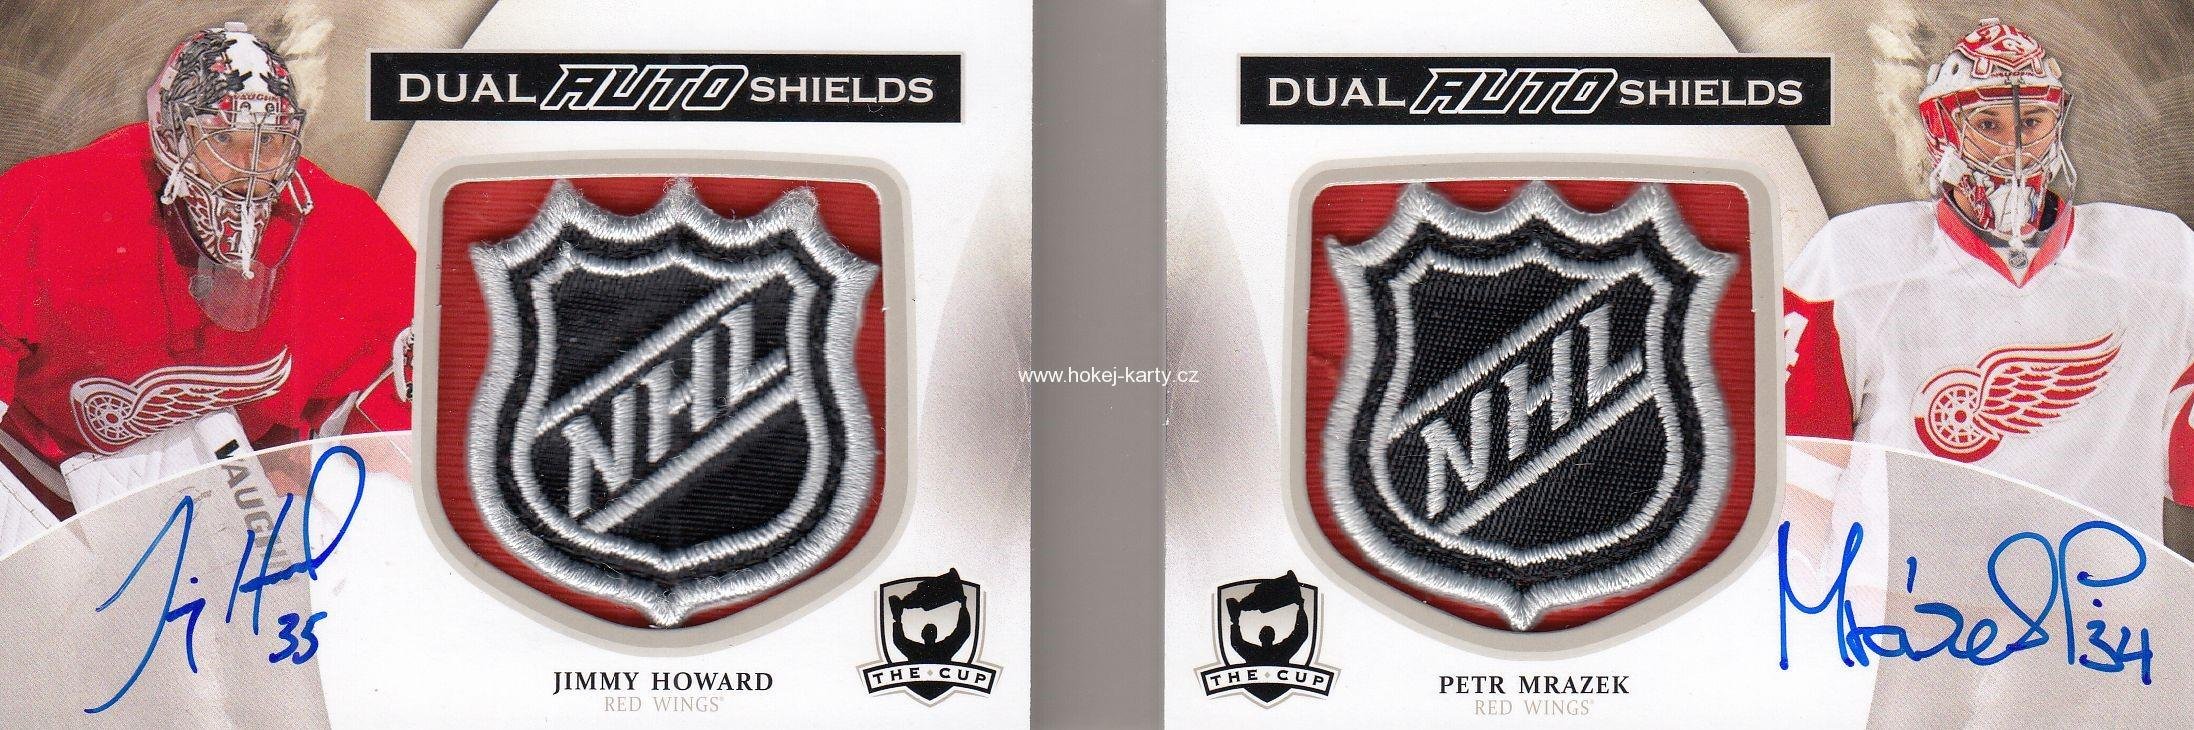 AUTO shield RC karta HOWARD/MRÁZEK 13-14 UD The Cup NHL Shields Dual 1/1